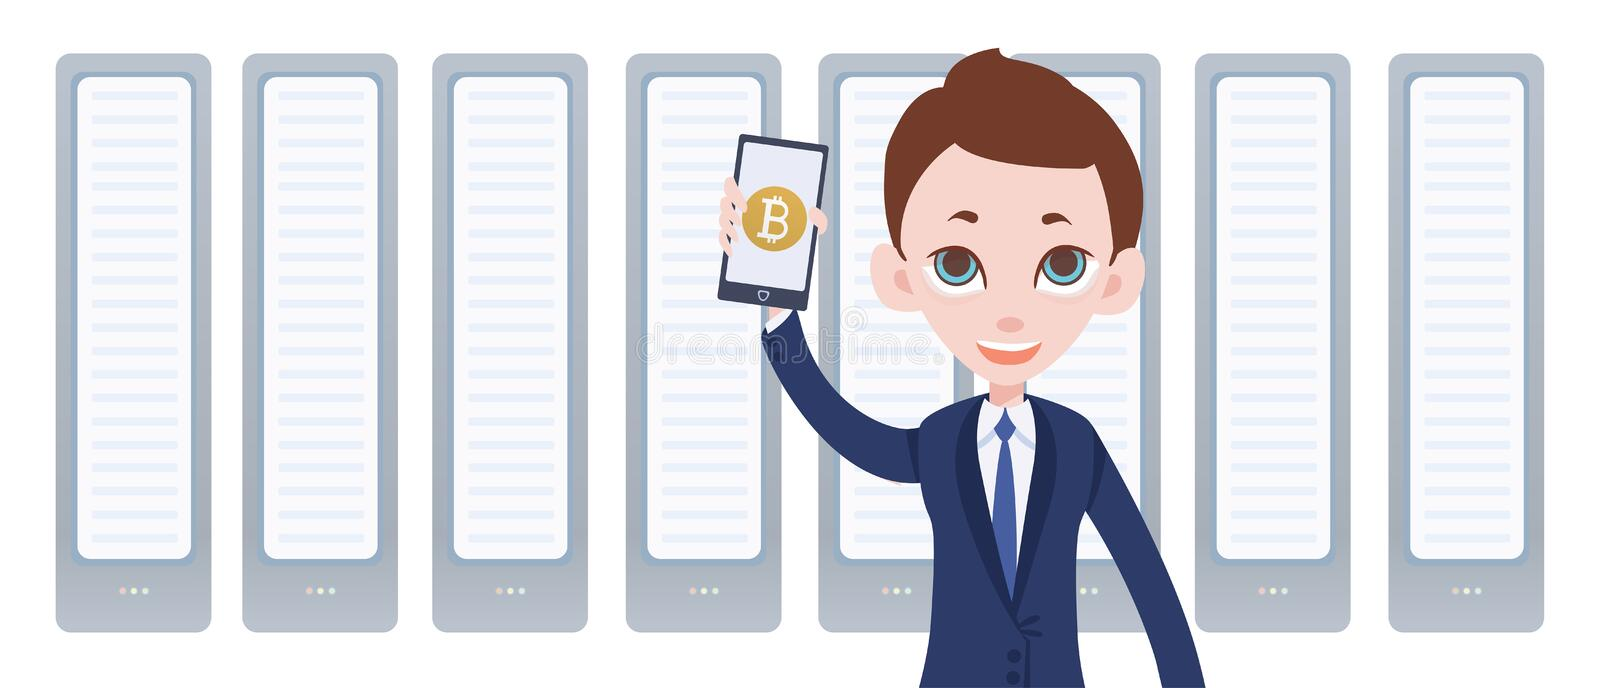 Cryptocurrency mining farm and man with smartphone in hand. Mobile bitcoin wallet app. Vector illustration by flat style. In white background royalty free illustration